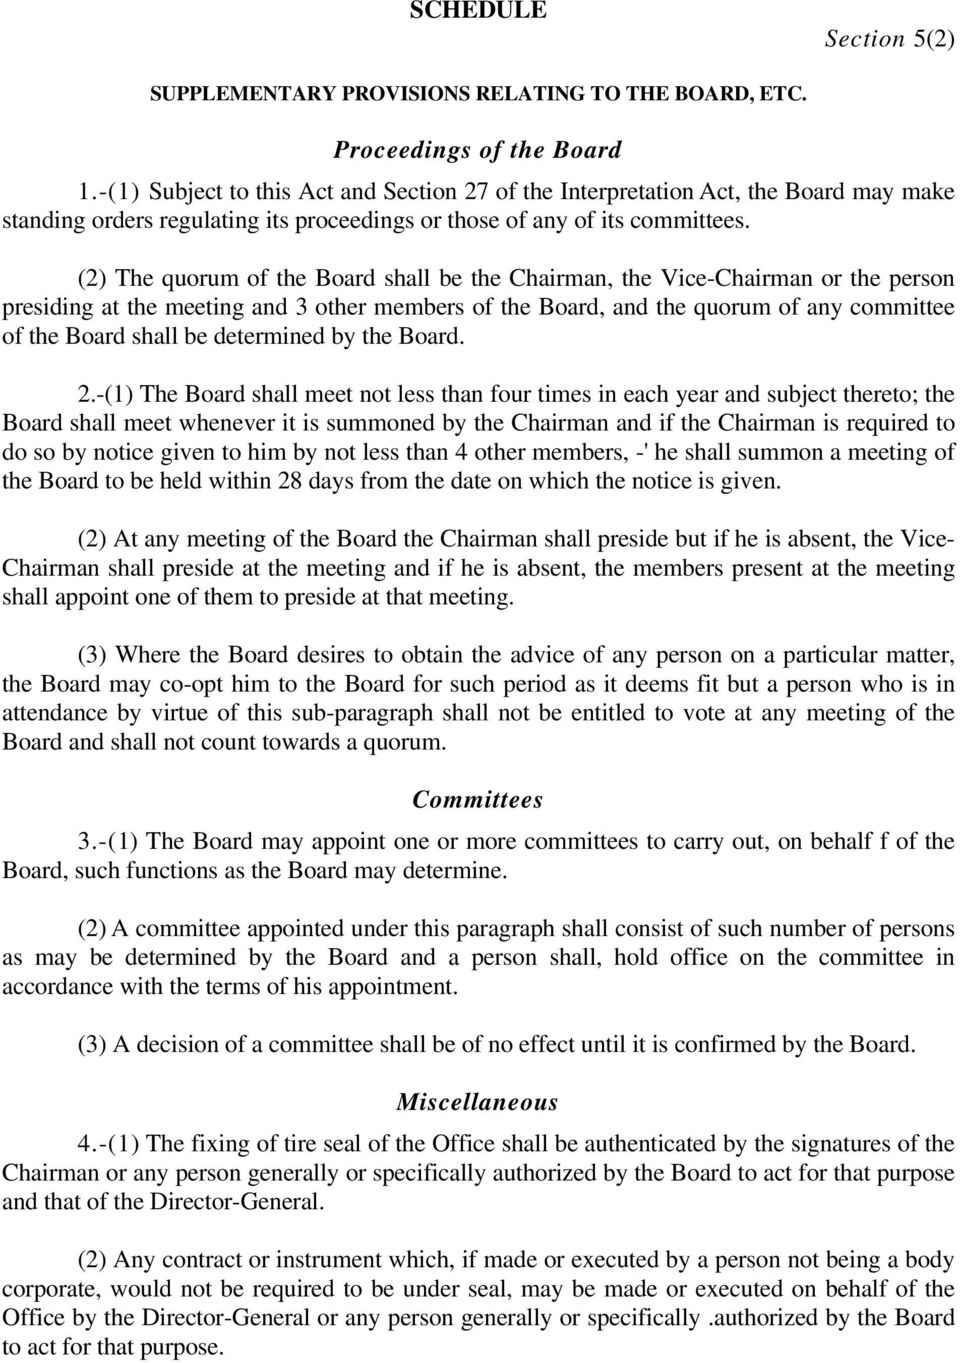 (2) The quorum of the Board shall be the Chairman, the Vice-Chairman or the person presiding at the meeting and 3 other members of the Board, and the quorum of any committee of the Board shall be